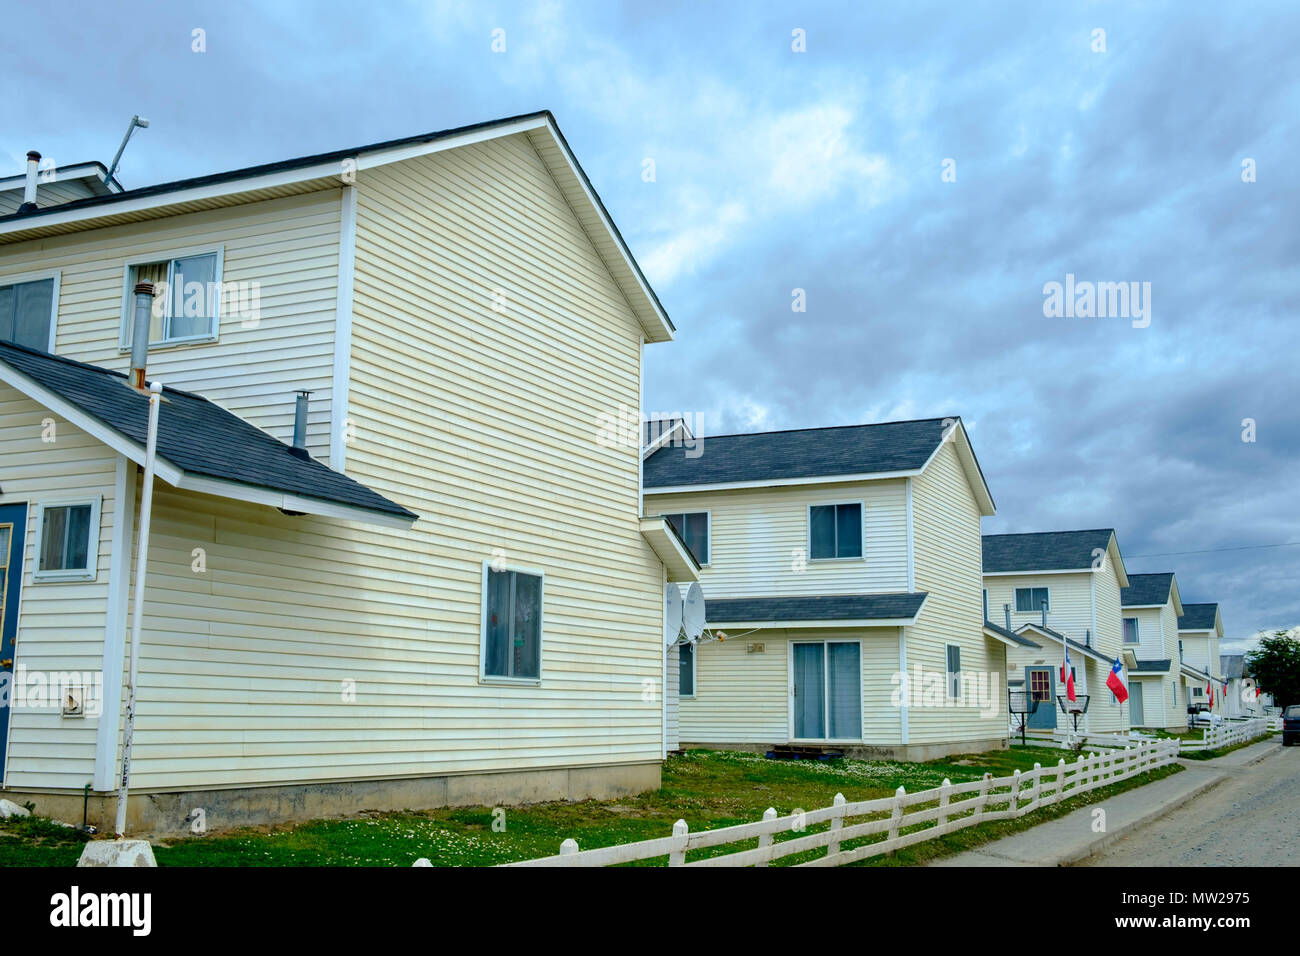 A military neighbourhood with identical houses in Puerto Williams in the extreme south of Chile. It is the southernmost town in the world. - Stock Image